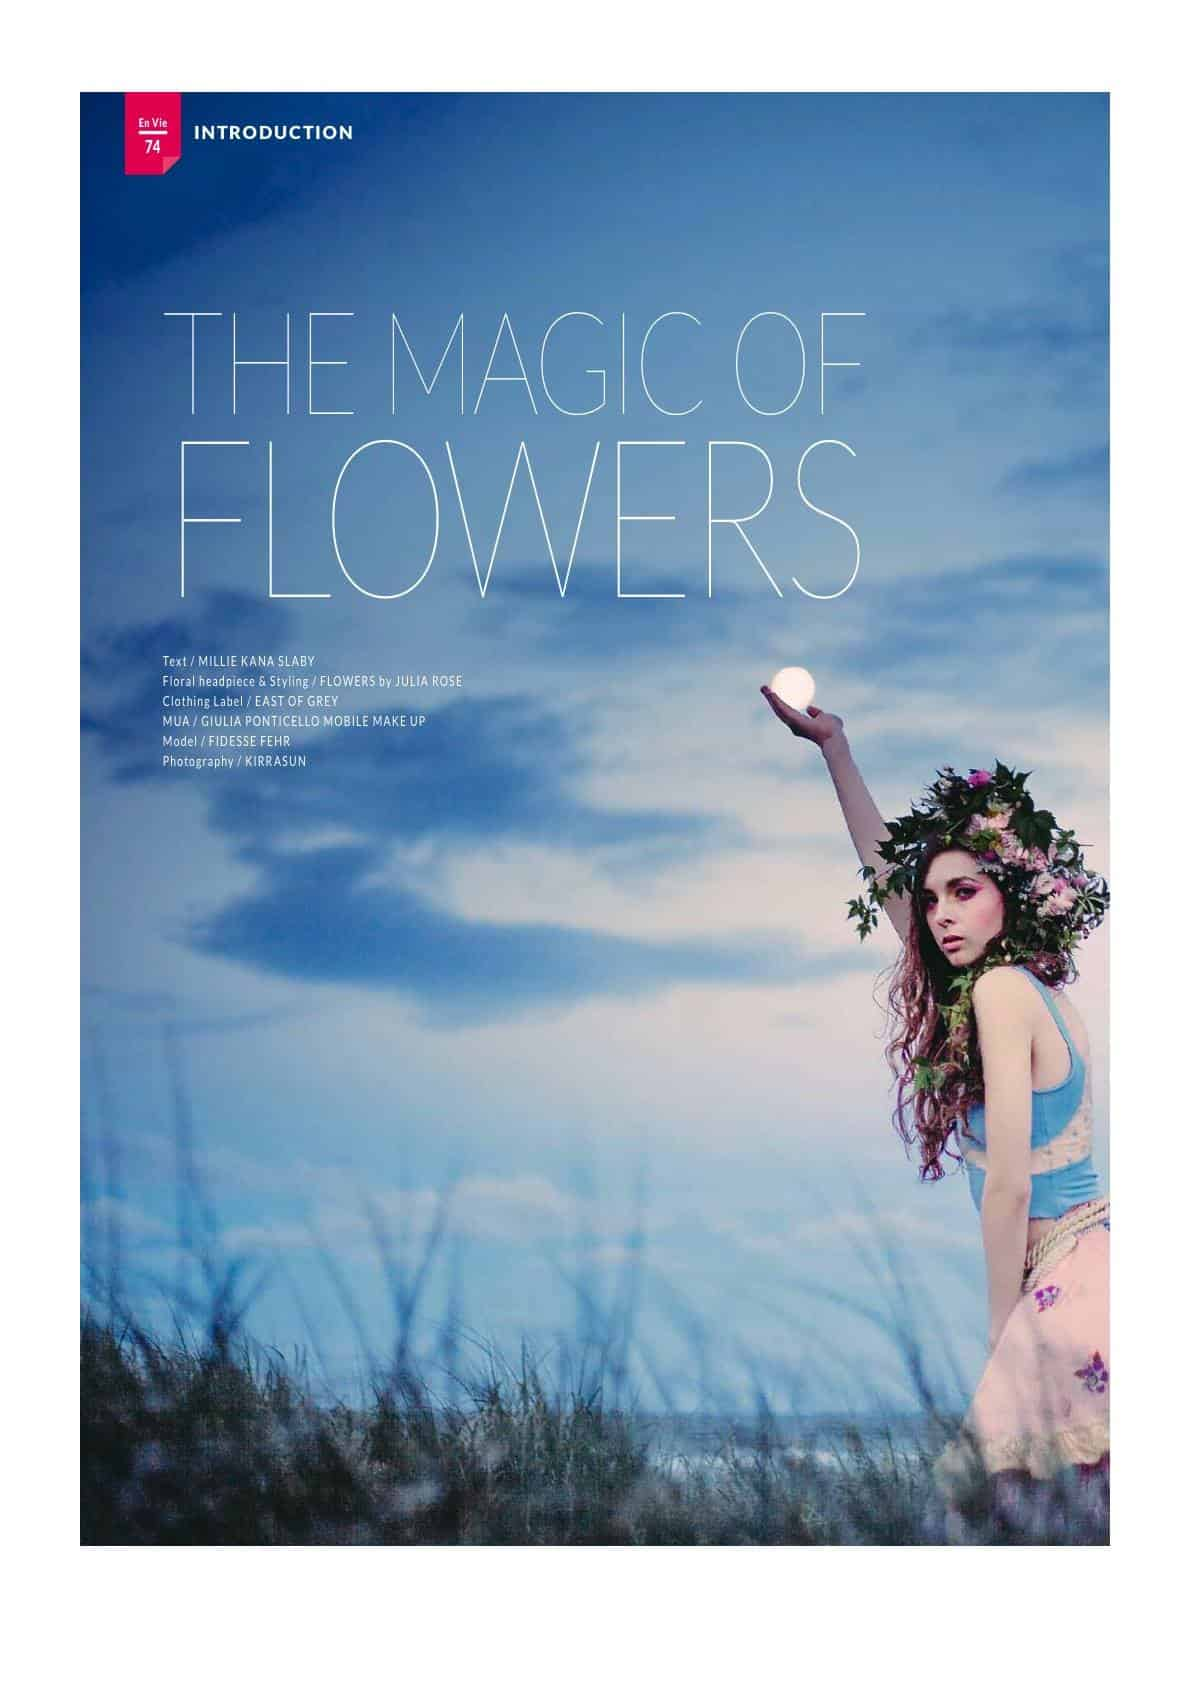 Envie Magazine - Artisti feature - Flowers by Julia rose